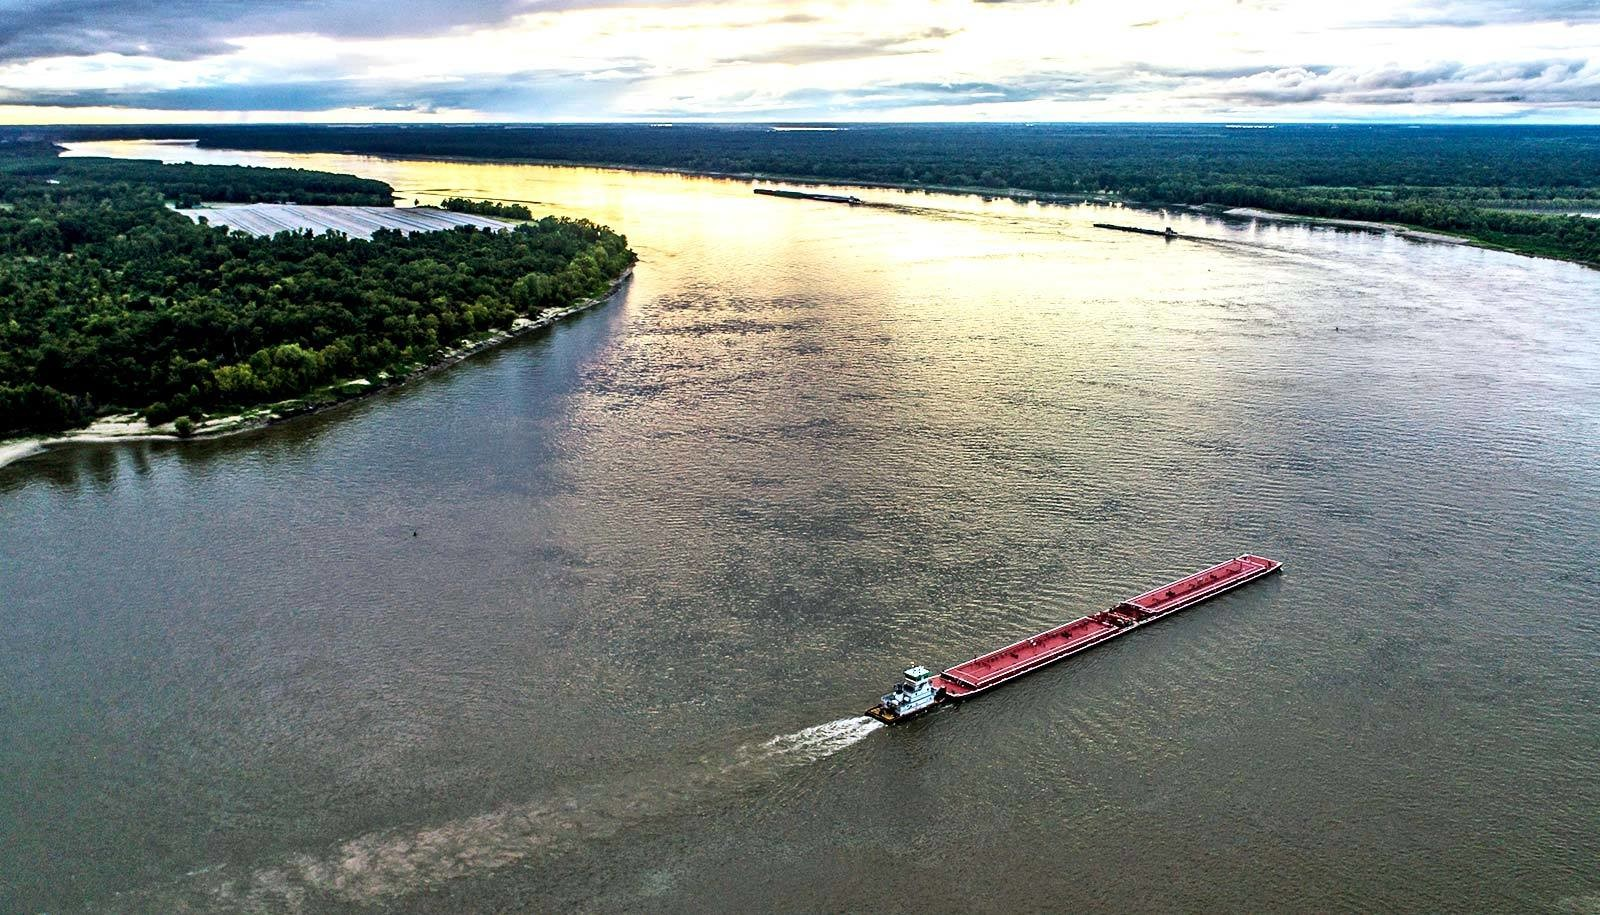 A boat floats down the Mississippi river.